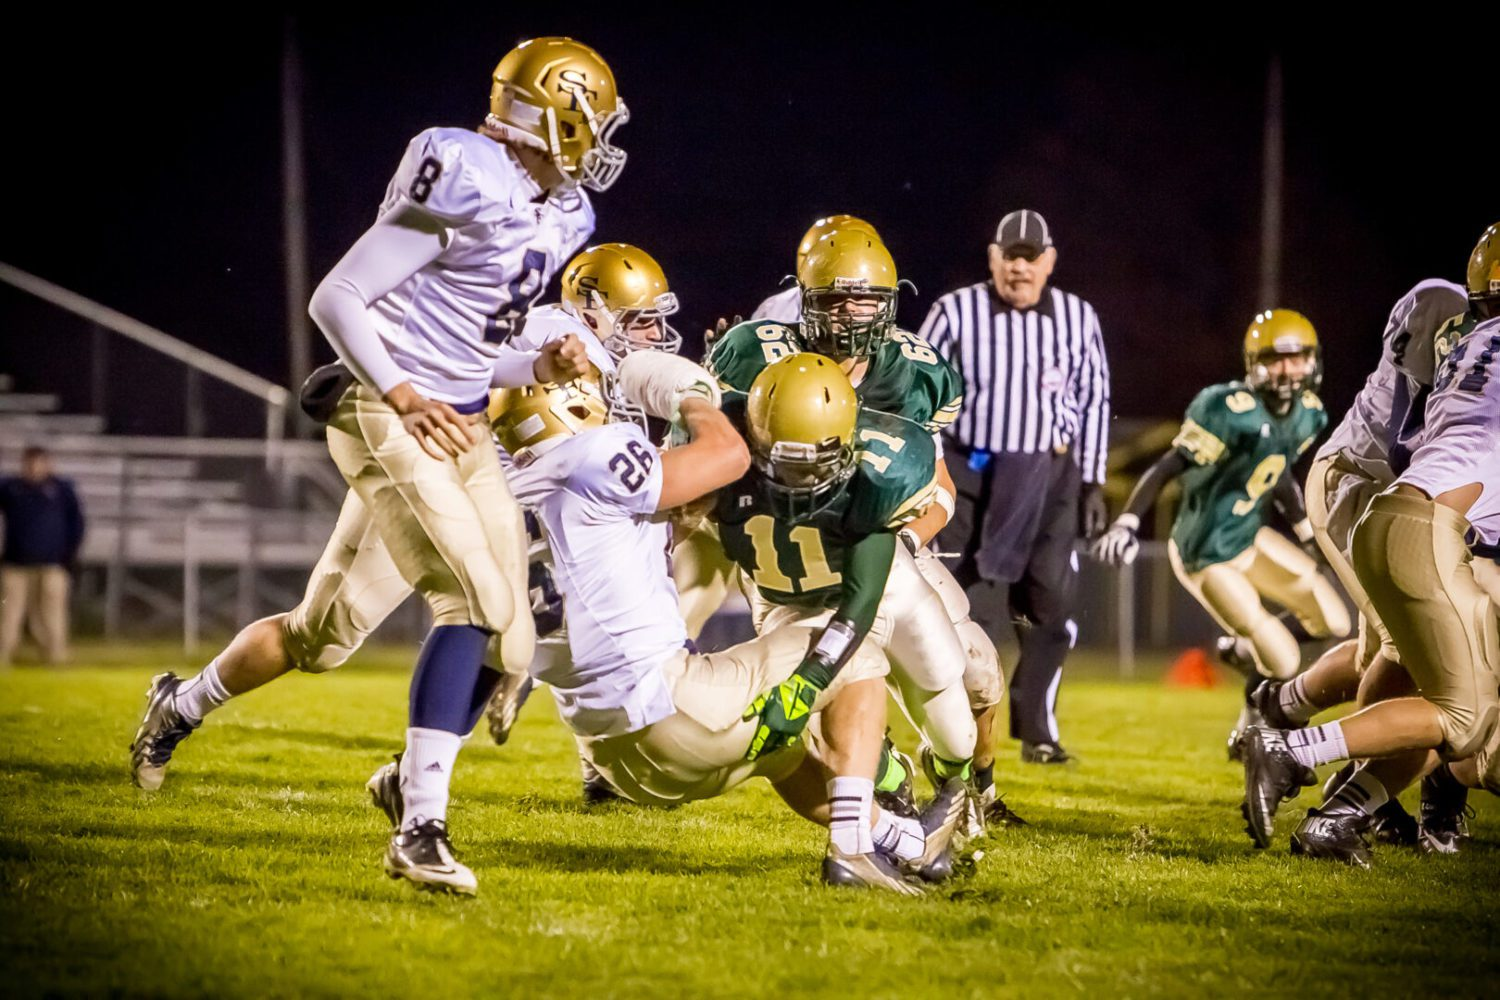 Muskegon Catholic blanks Traverse City St. Francis in 42-point blowout [video]